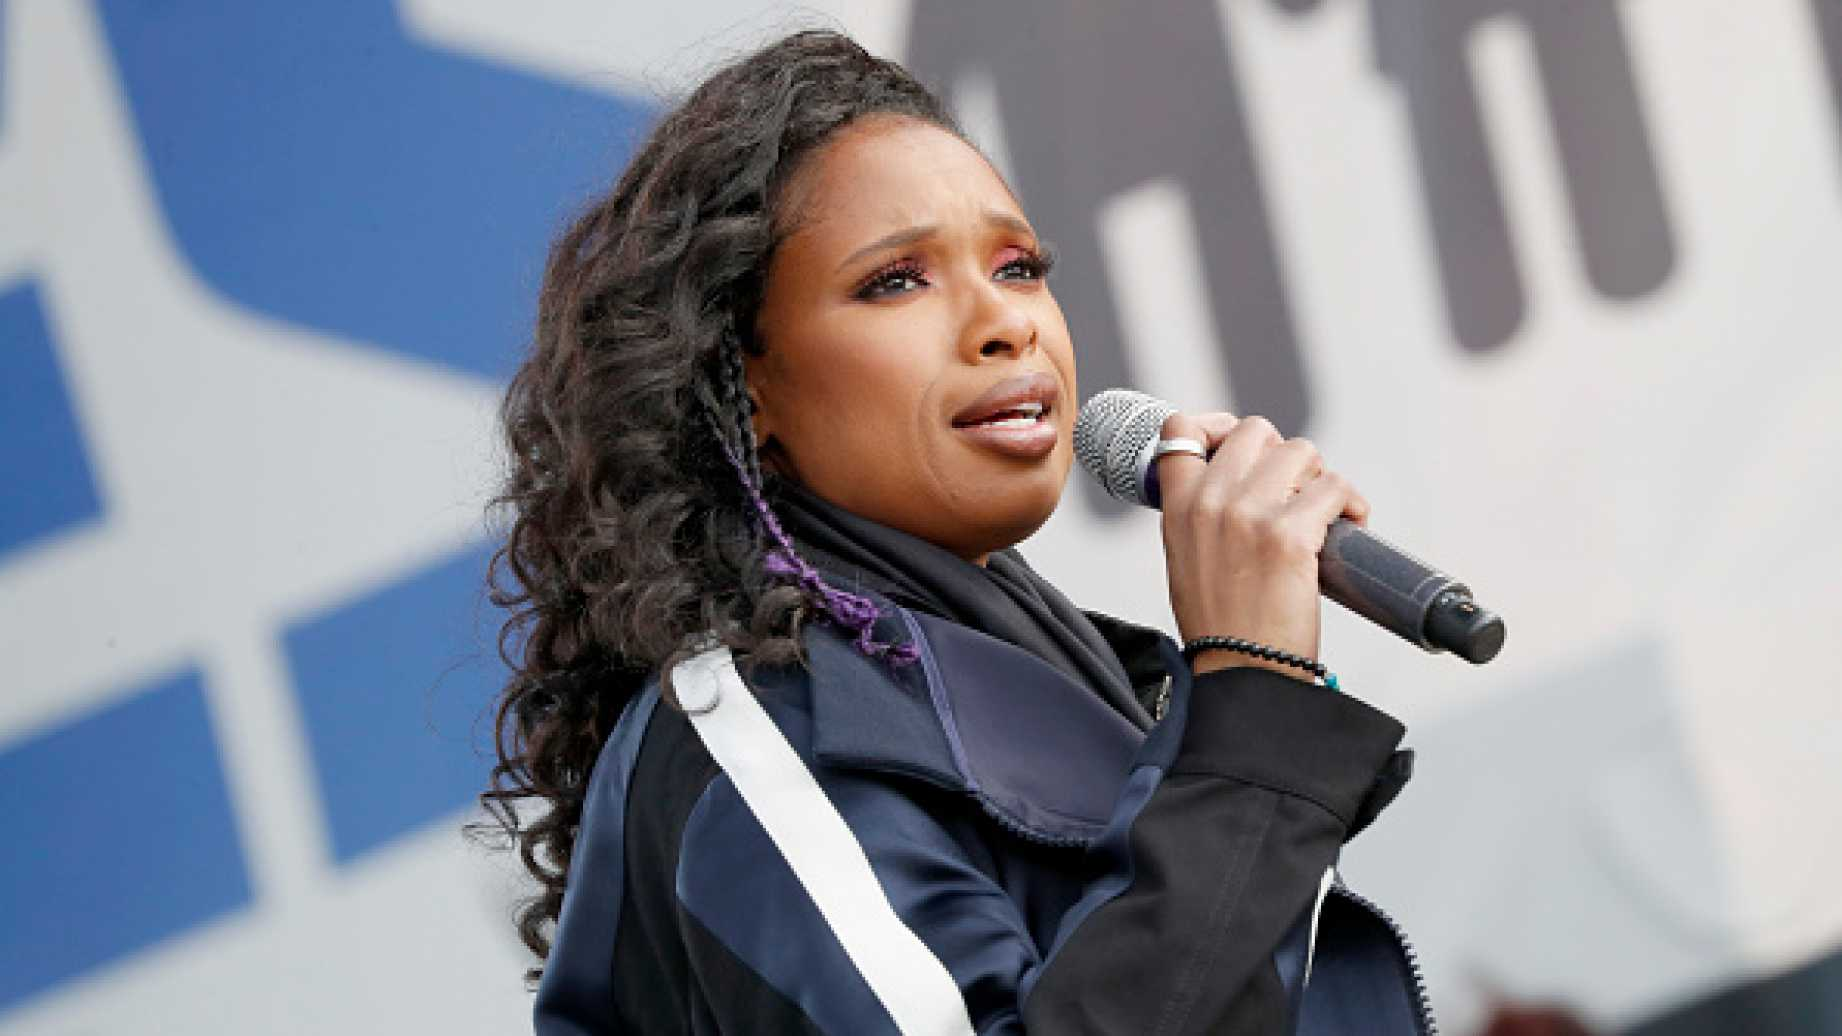 Jennifer Hudson To Sing Ruth Bader Ginsburg Song Ill Fight At The Oscars